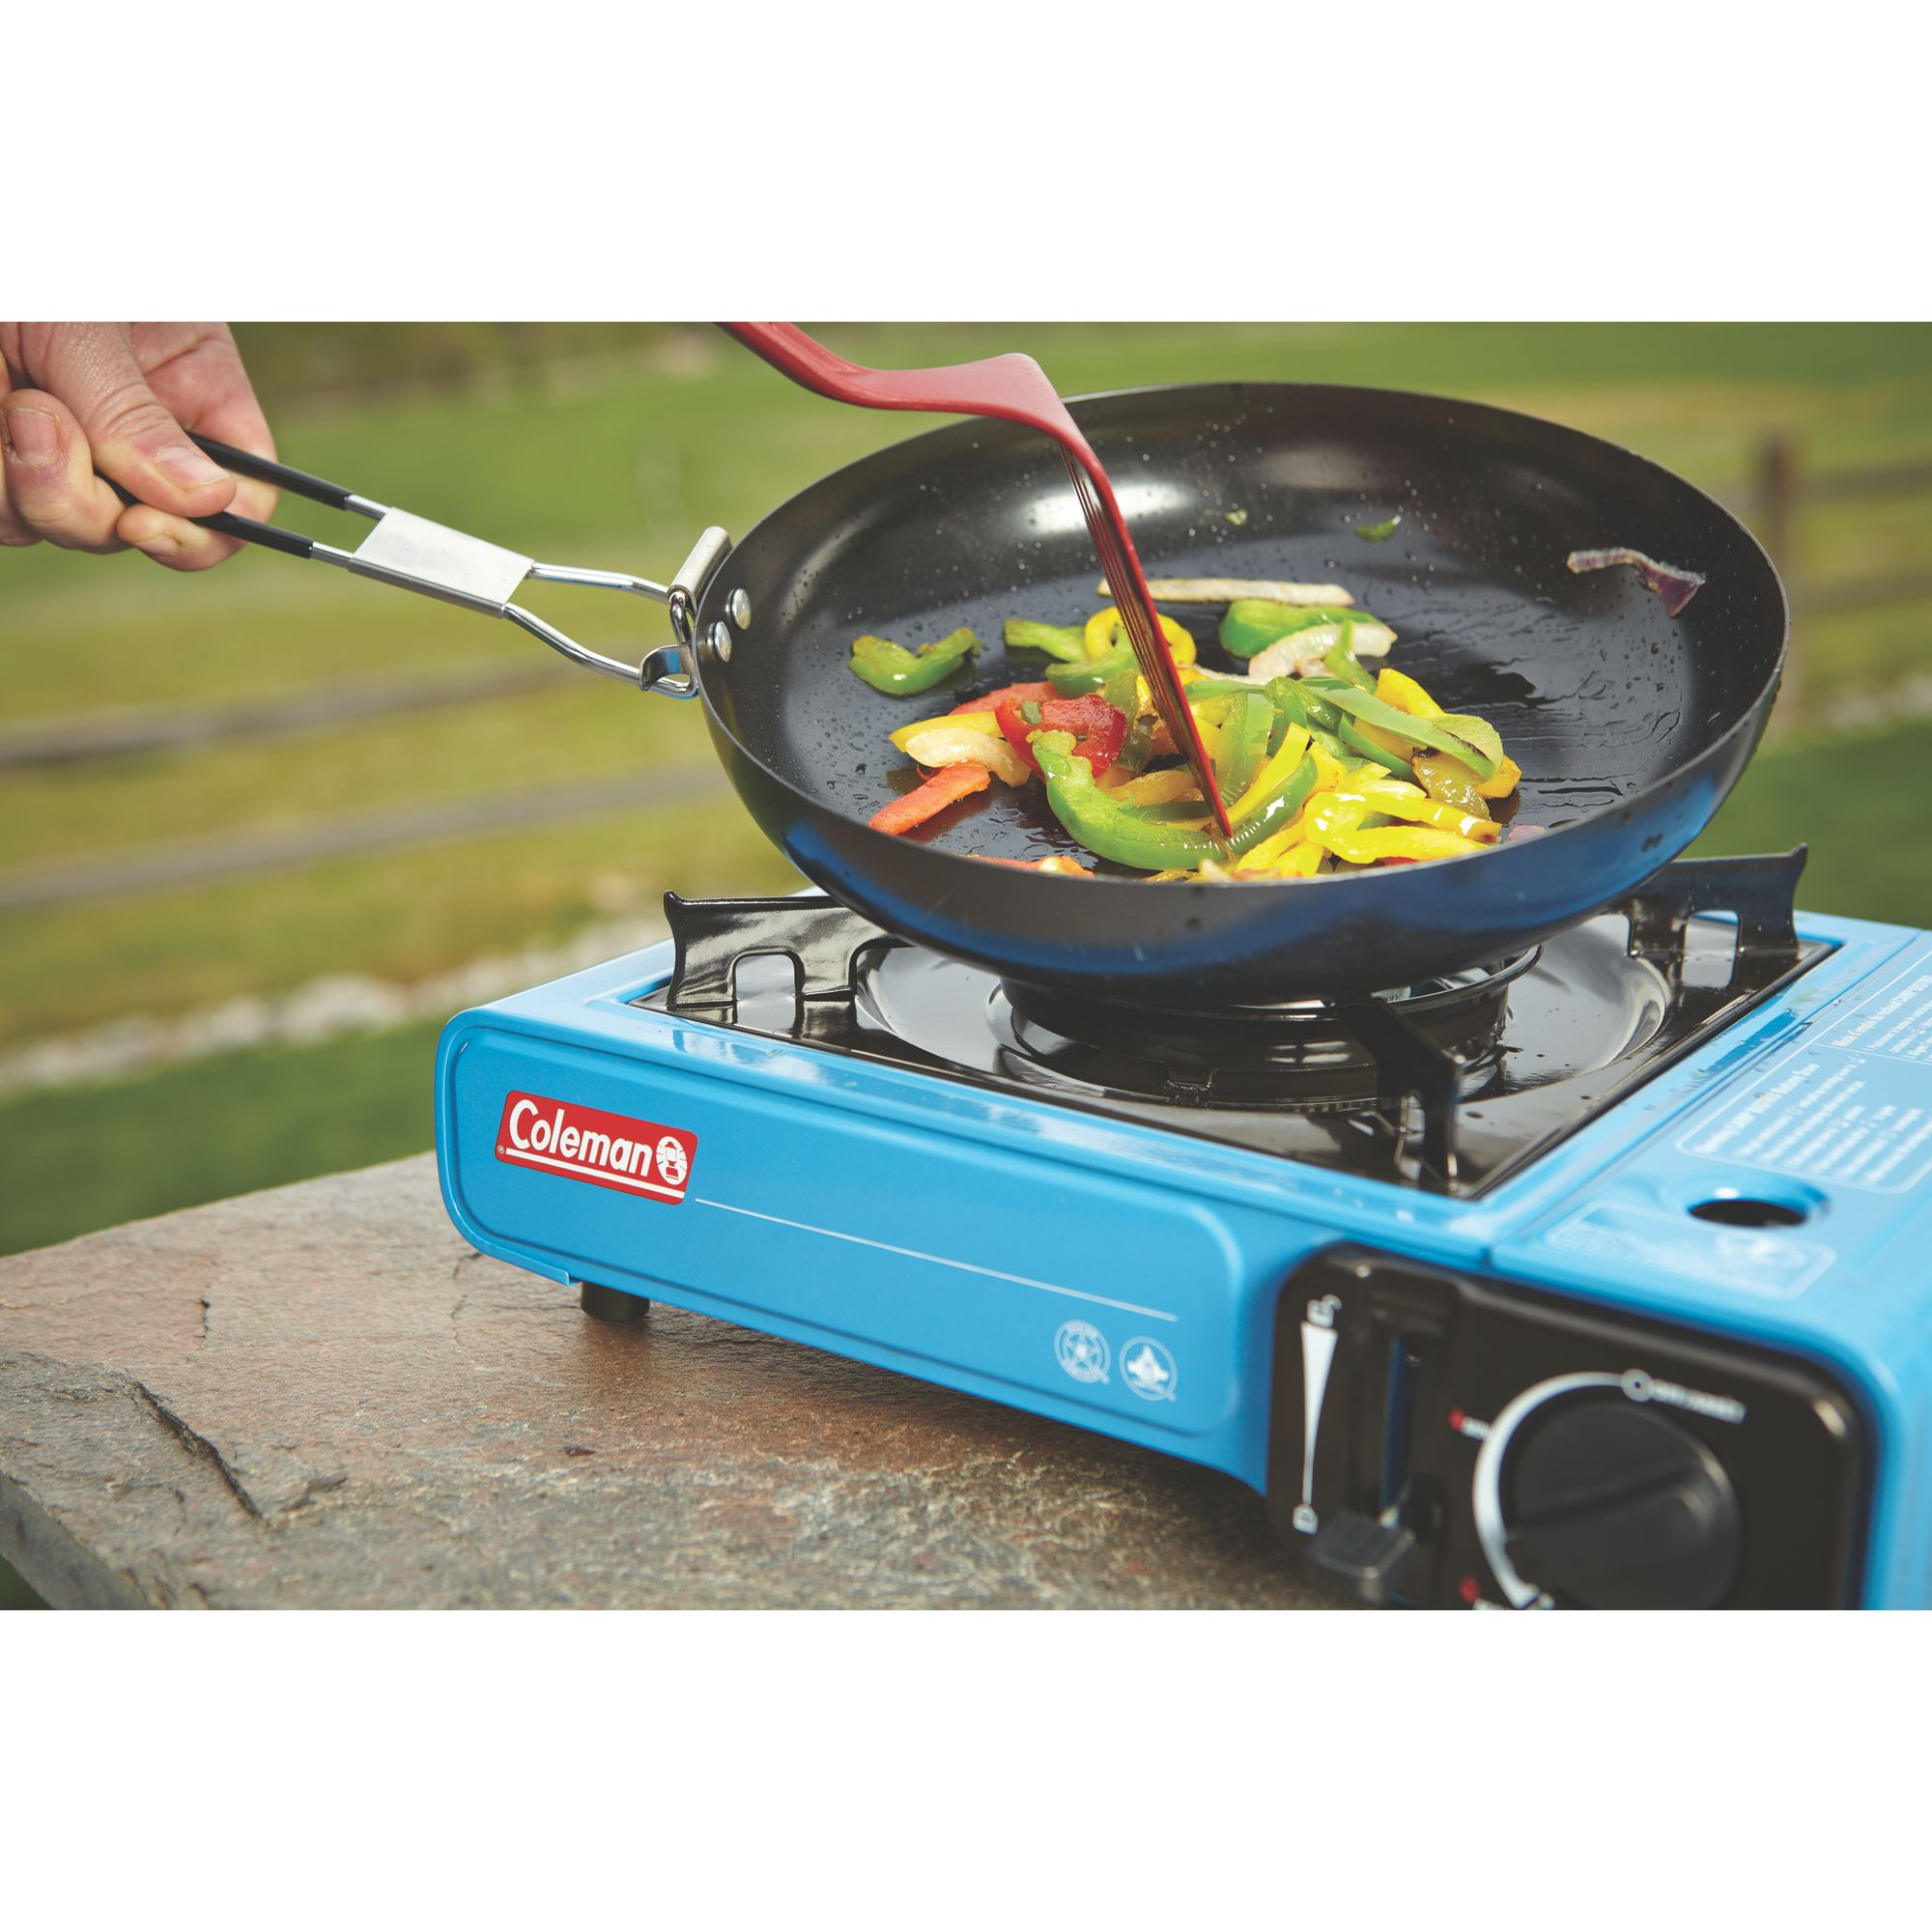 camping stoves  camping cooking gear  coleman -  butane stove